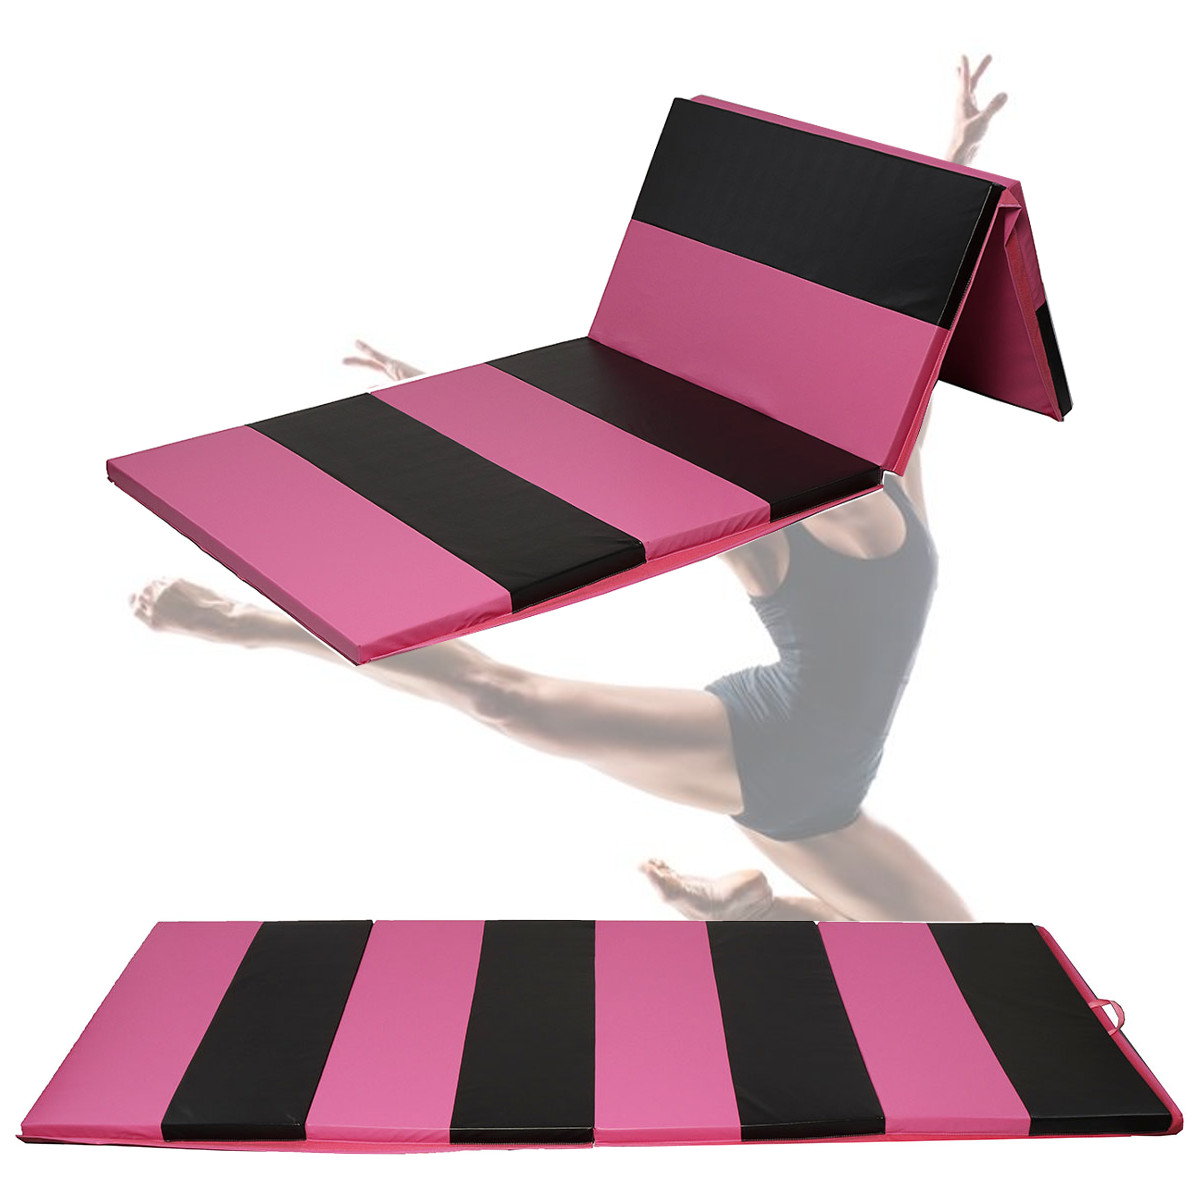 все цены на 10FT Protable Folding Gymnastics Tumble Mat Yoga Exercise Fitness Pilates Gym Black Pink Stripe онлайн